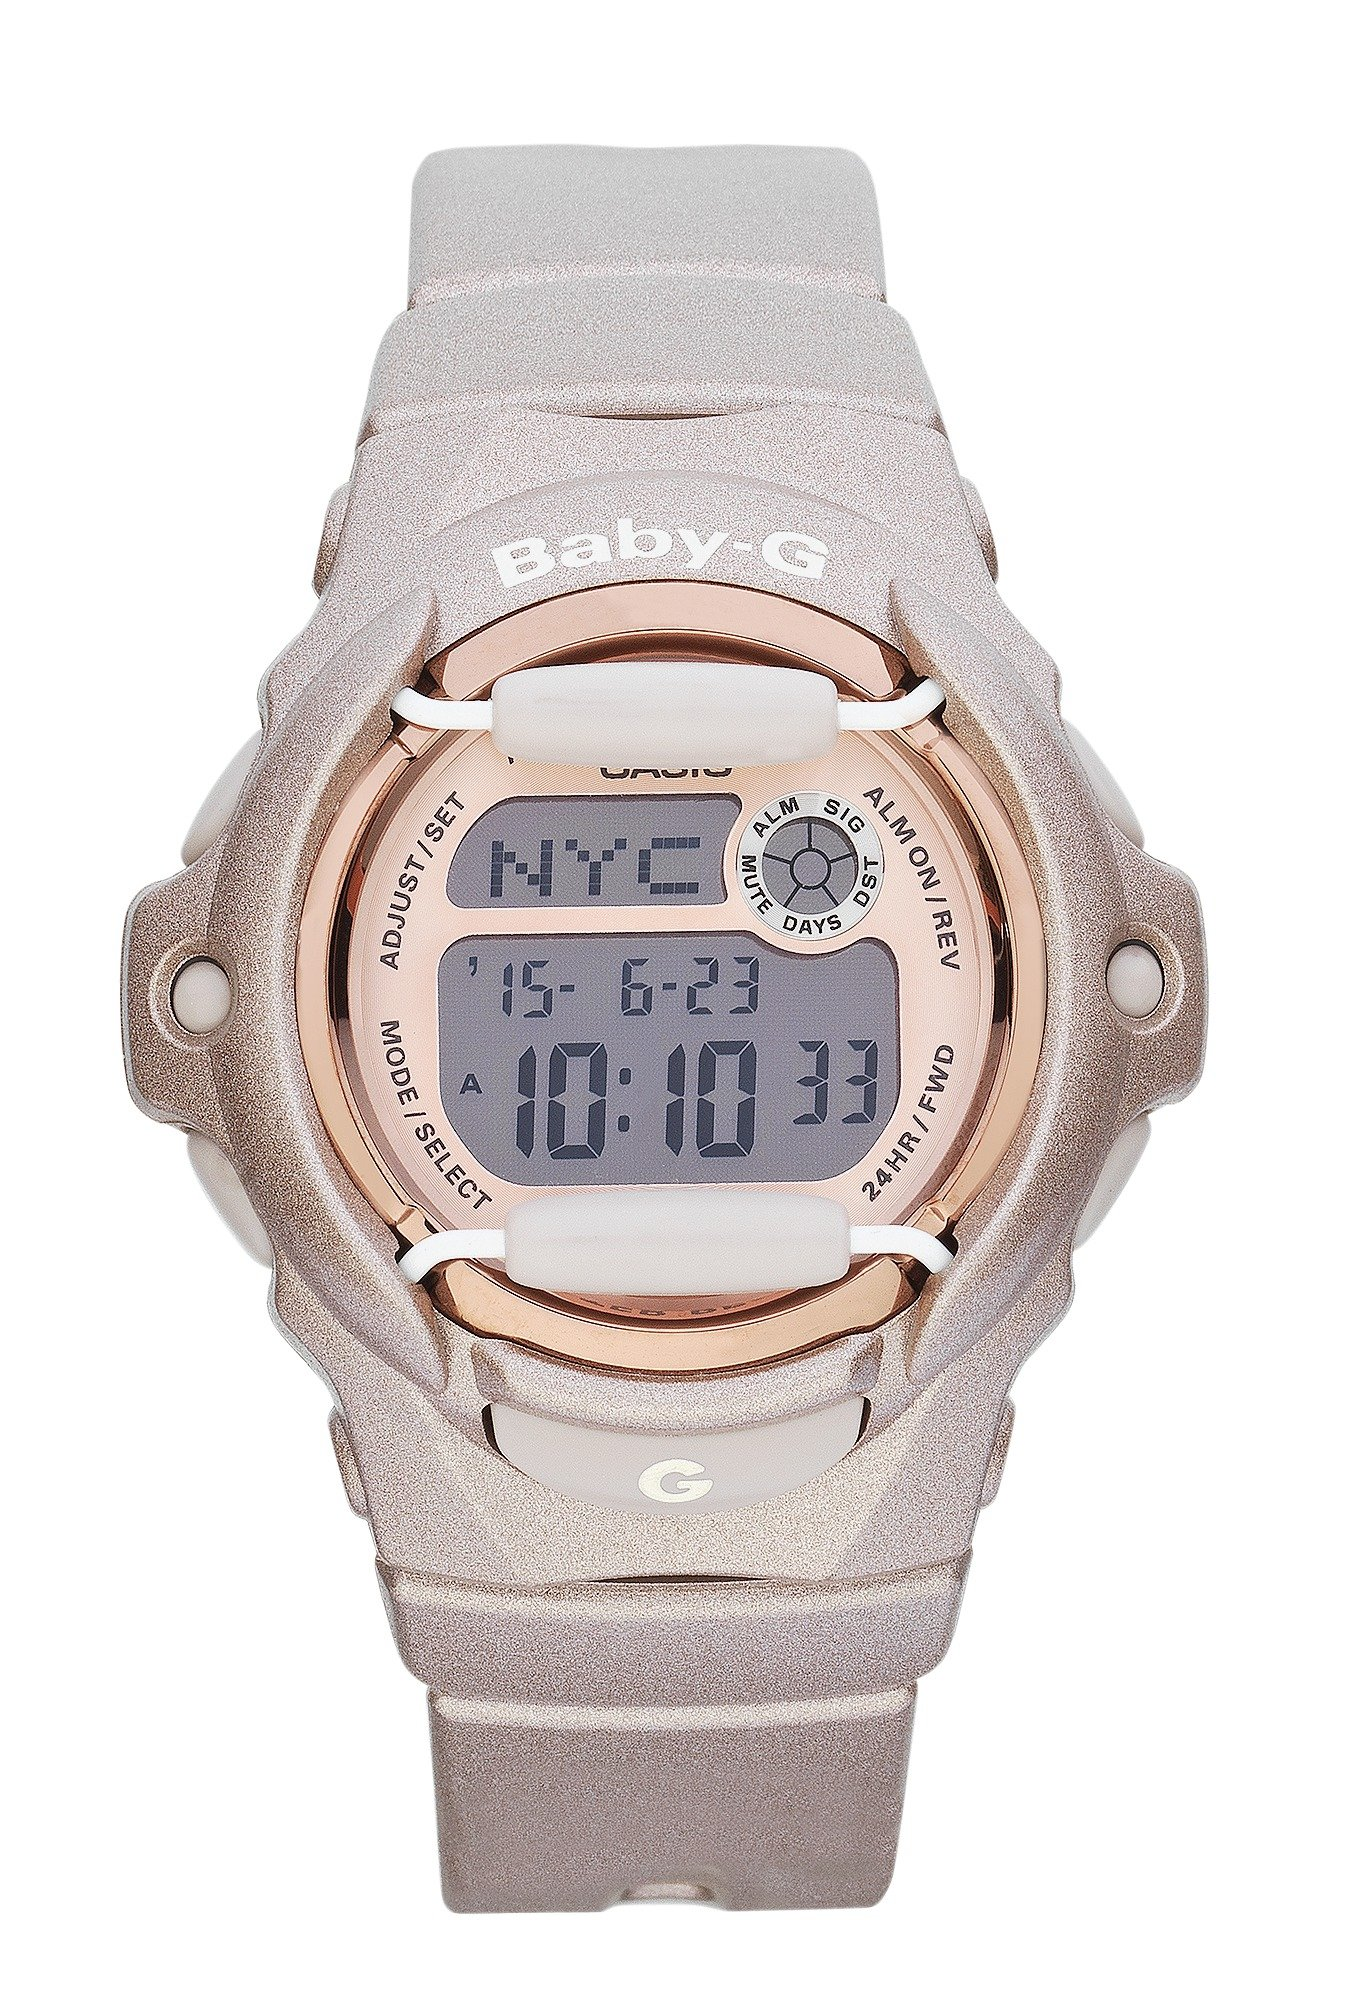 Casio Baby-G 25 Page Telememo